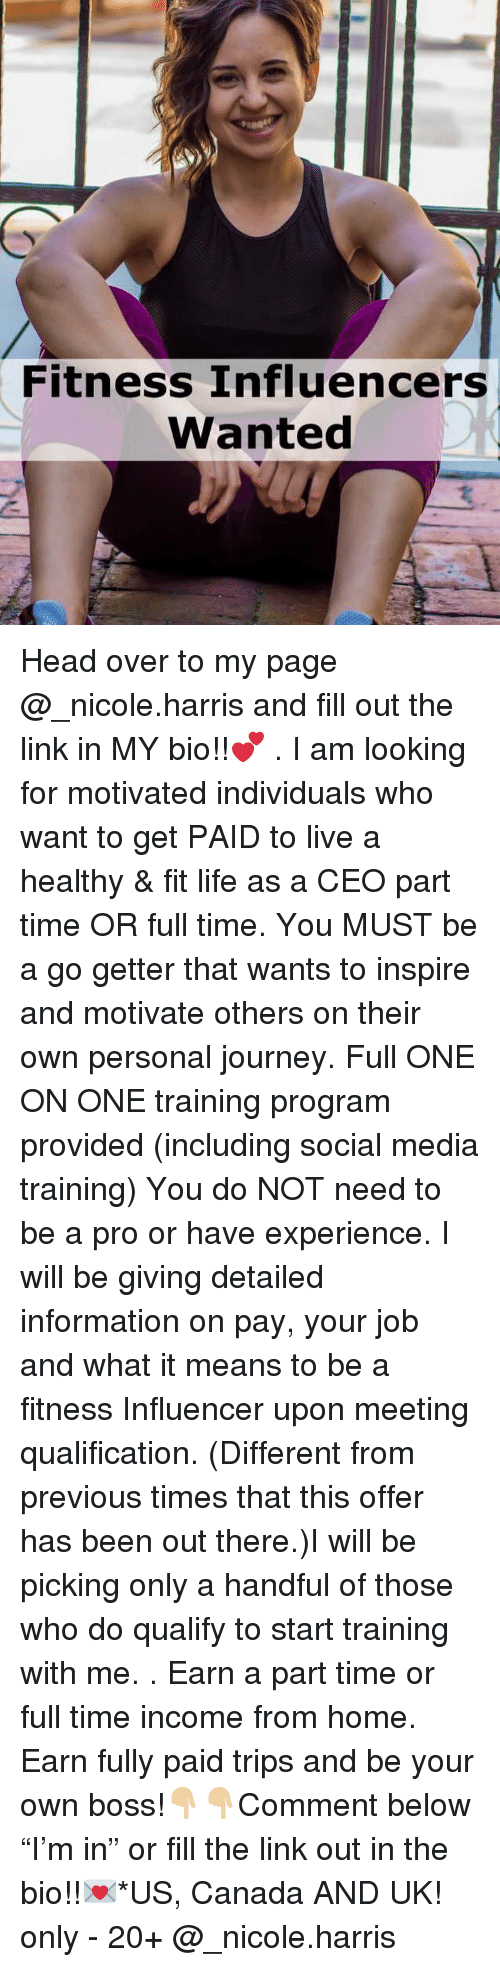 """Head, Journey, and Life: Fitness Influencers  Wanted Head over to my page @_nicole.harris and fill out the link in MY bio!!💕 . I am looking for motivated individuals who want to get PAID to live a healthy & fit life as a CEO part time OR full time. You MUST be a go getter that wants to inspire and motivate others on their own personal journey. Full ONE ON ONE training program provided (including social media training) You do NOT need to be a pro or have experience. I will be giving detailed information on pay, your job and what it means to be a fitness Influencer upon meeting qualification. (Different from previous times that this offer has been out there.)I will be picking only a handful of those who do qualify to start training with me. . Earn a part time or full time income from home. Earn fully paid trips and be your own boss!👇🏼👇🏼Comment below """"I'm in"""" or fill the link out in the bio!!💌*US, Canada AND UK! only - 20+ @_nicole.harris"""